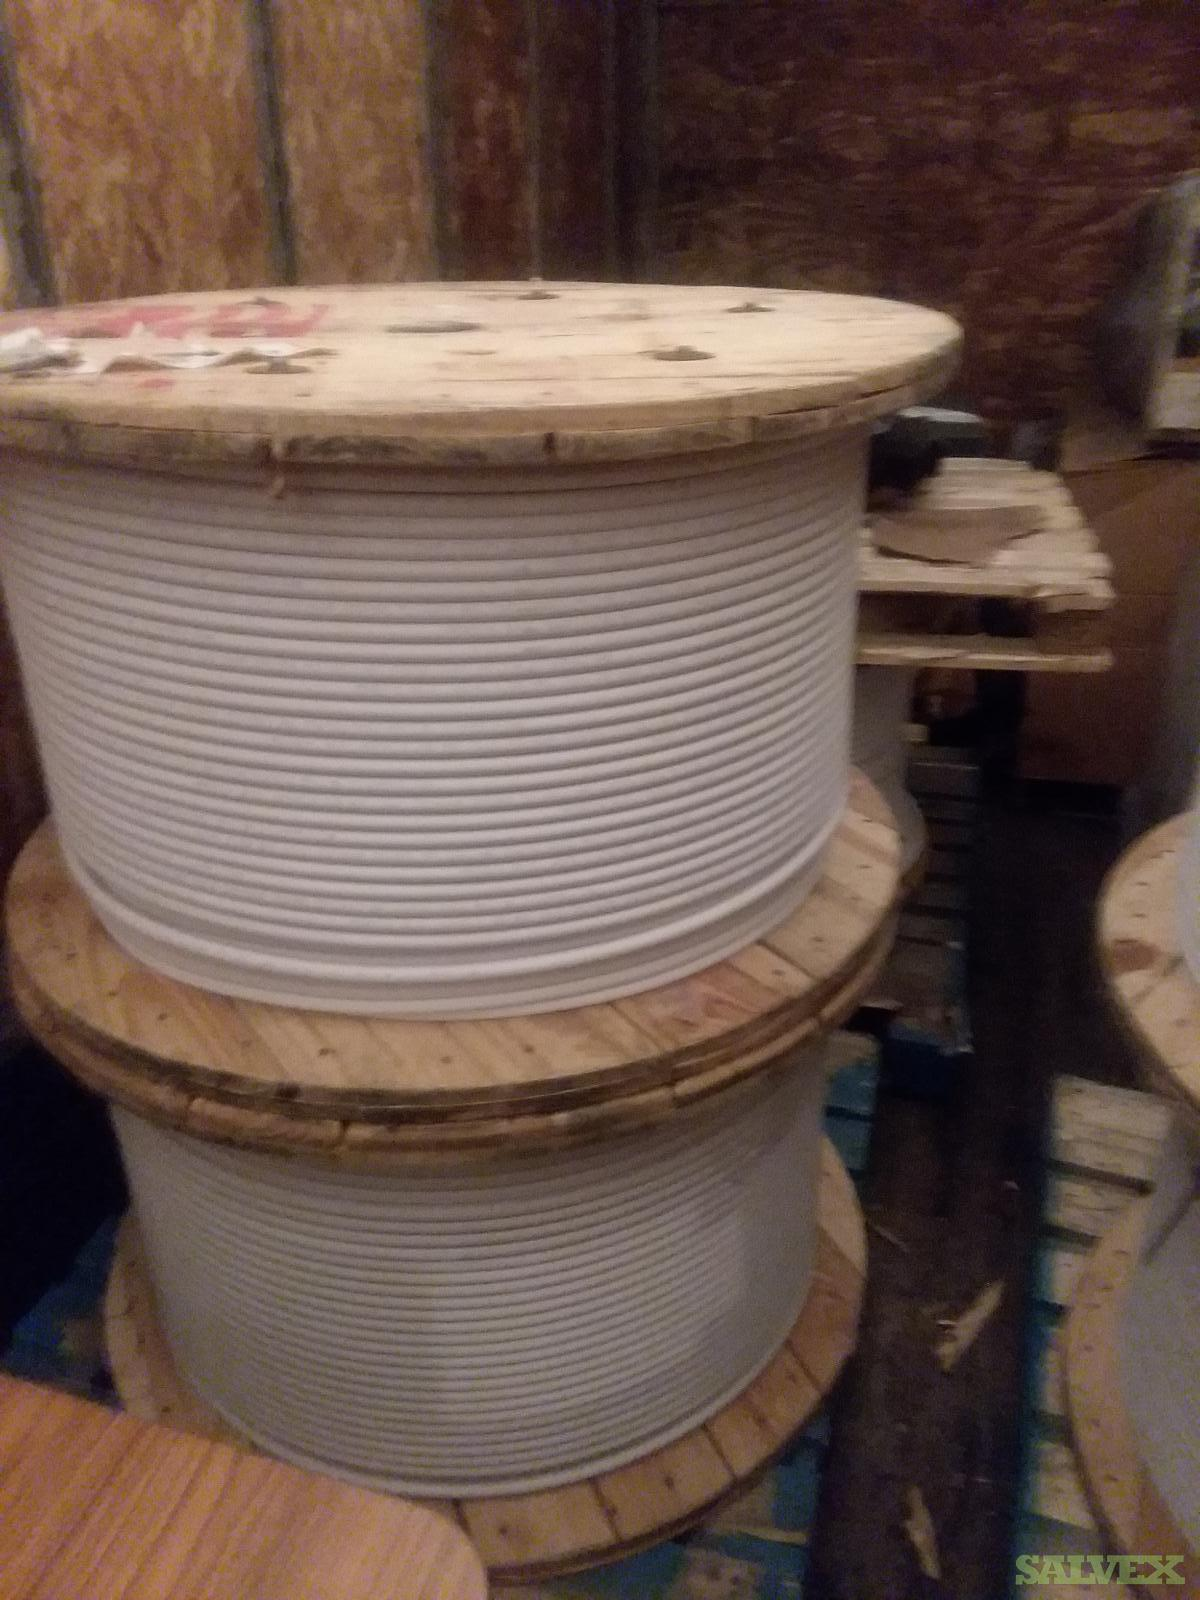 1/2 ClearFill Line Plenum-Rated Air-Dielectric Coaxial Cable for InBuilding Applications ( 5 Reels) in Pennsylvania.